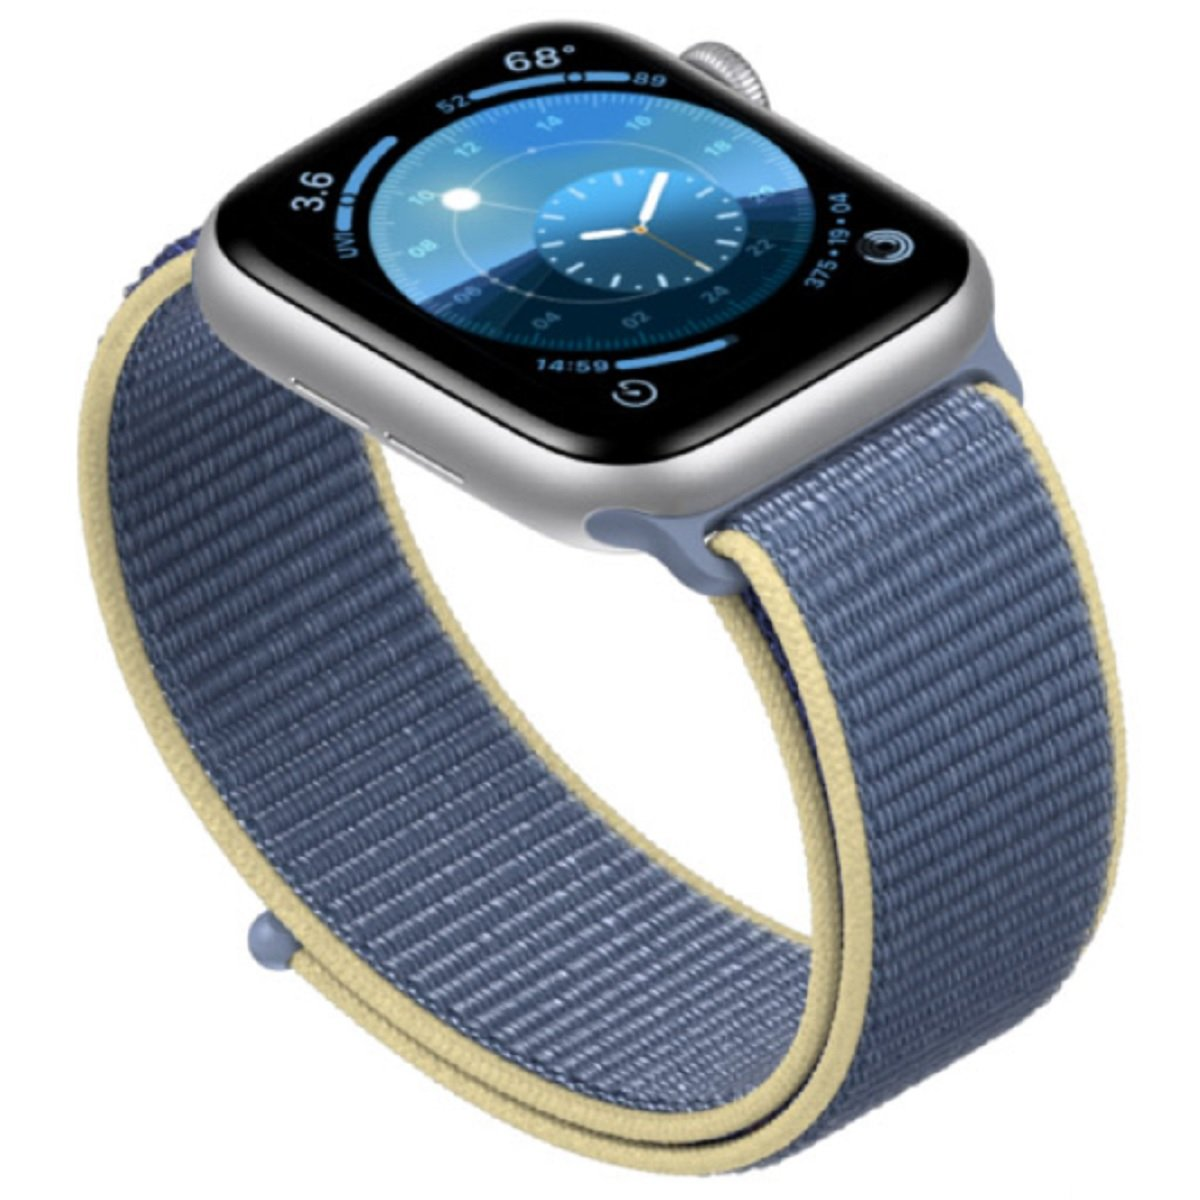 Apple Watch KBB Bonus - Get your complimentary Apple Watch with Knowledge Broker Blueprint